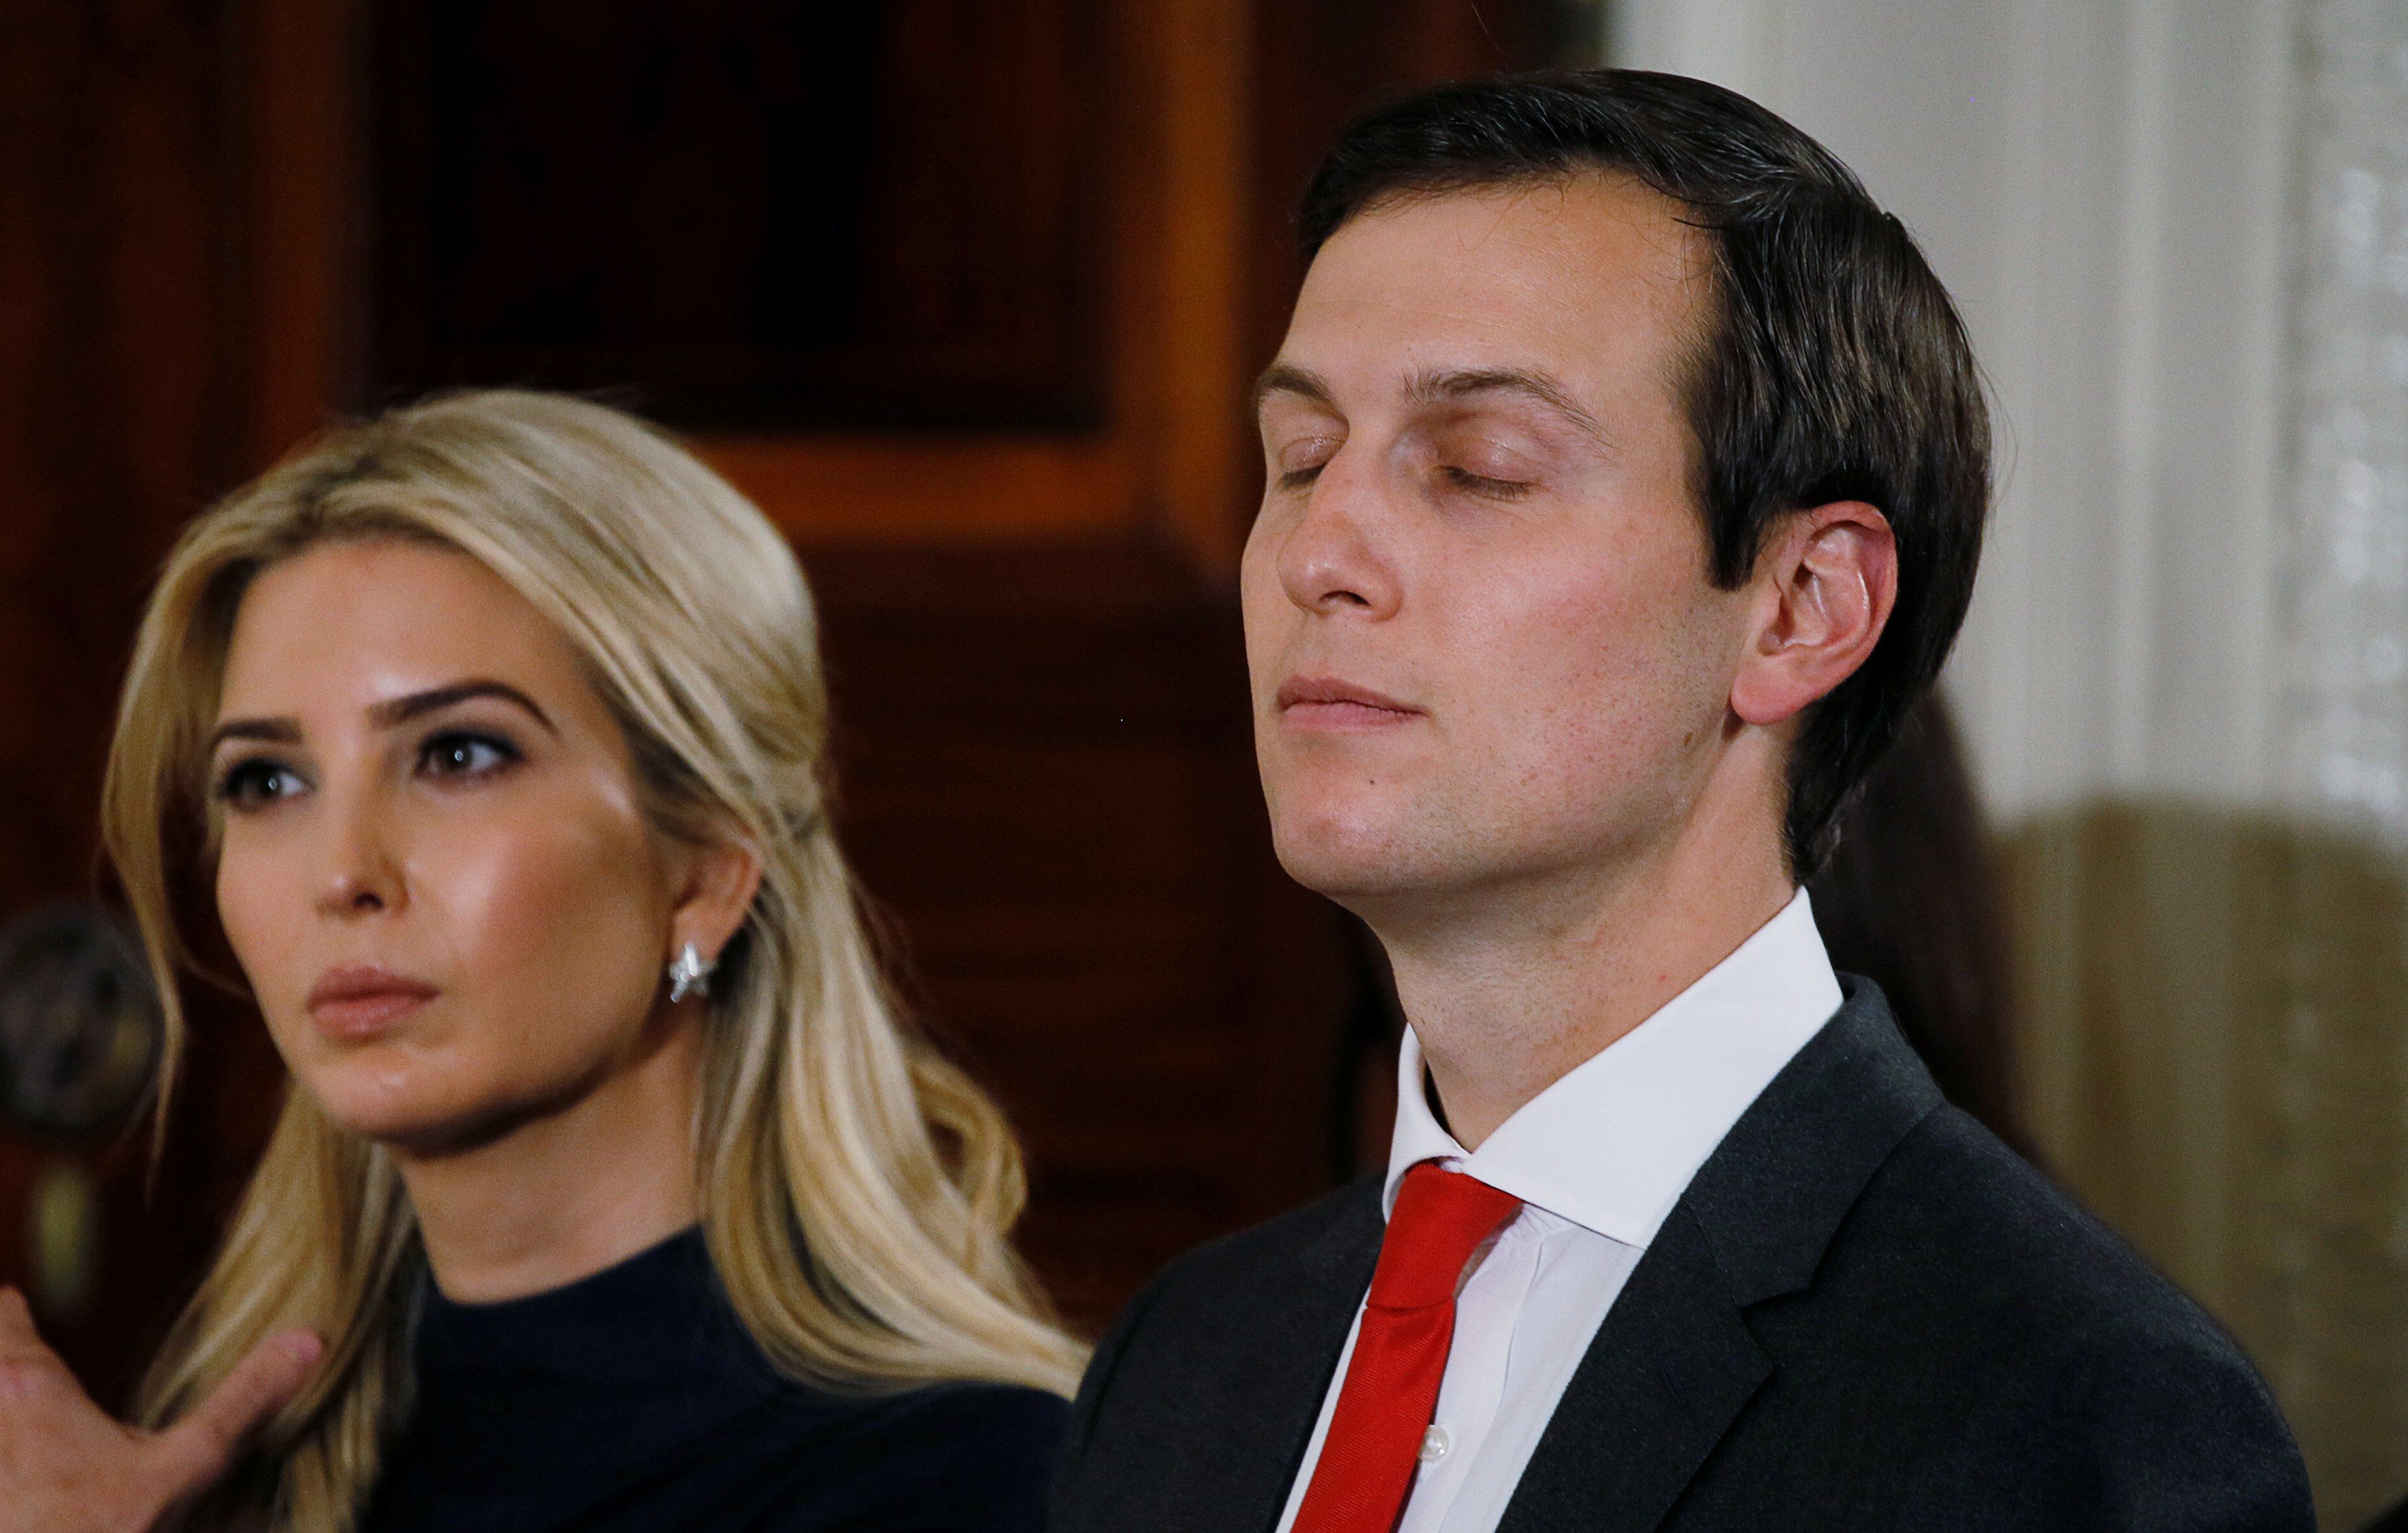 FILE PHOTO: White House Senior Advisor Jared Kushner sits with his wife Ivanka Trump (L) at President Donald Trump's joint news conference with German Chancellor Angela Merkel in the East Room of the White House in Washington, U.S. March 17, 2017. REUTERS/Jim Bourg/Files